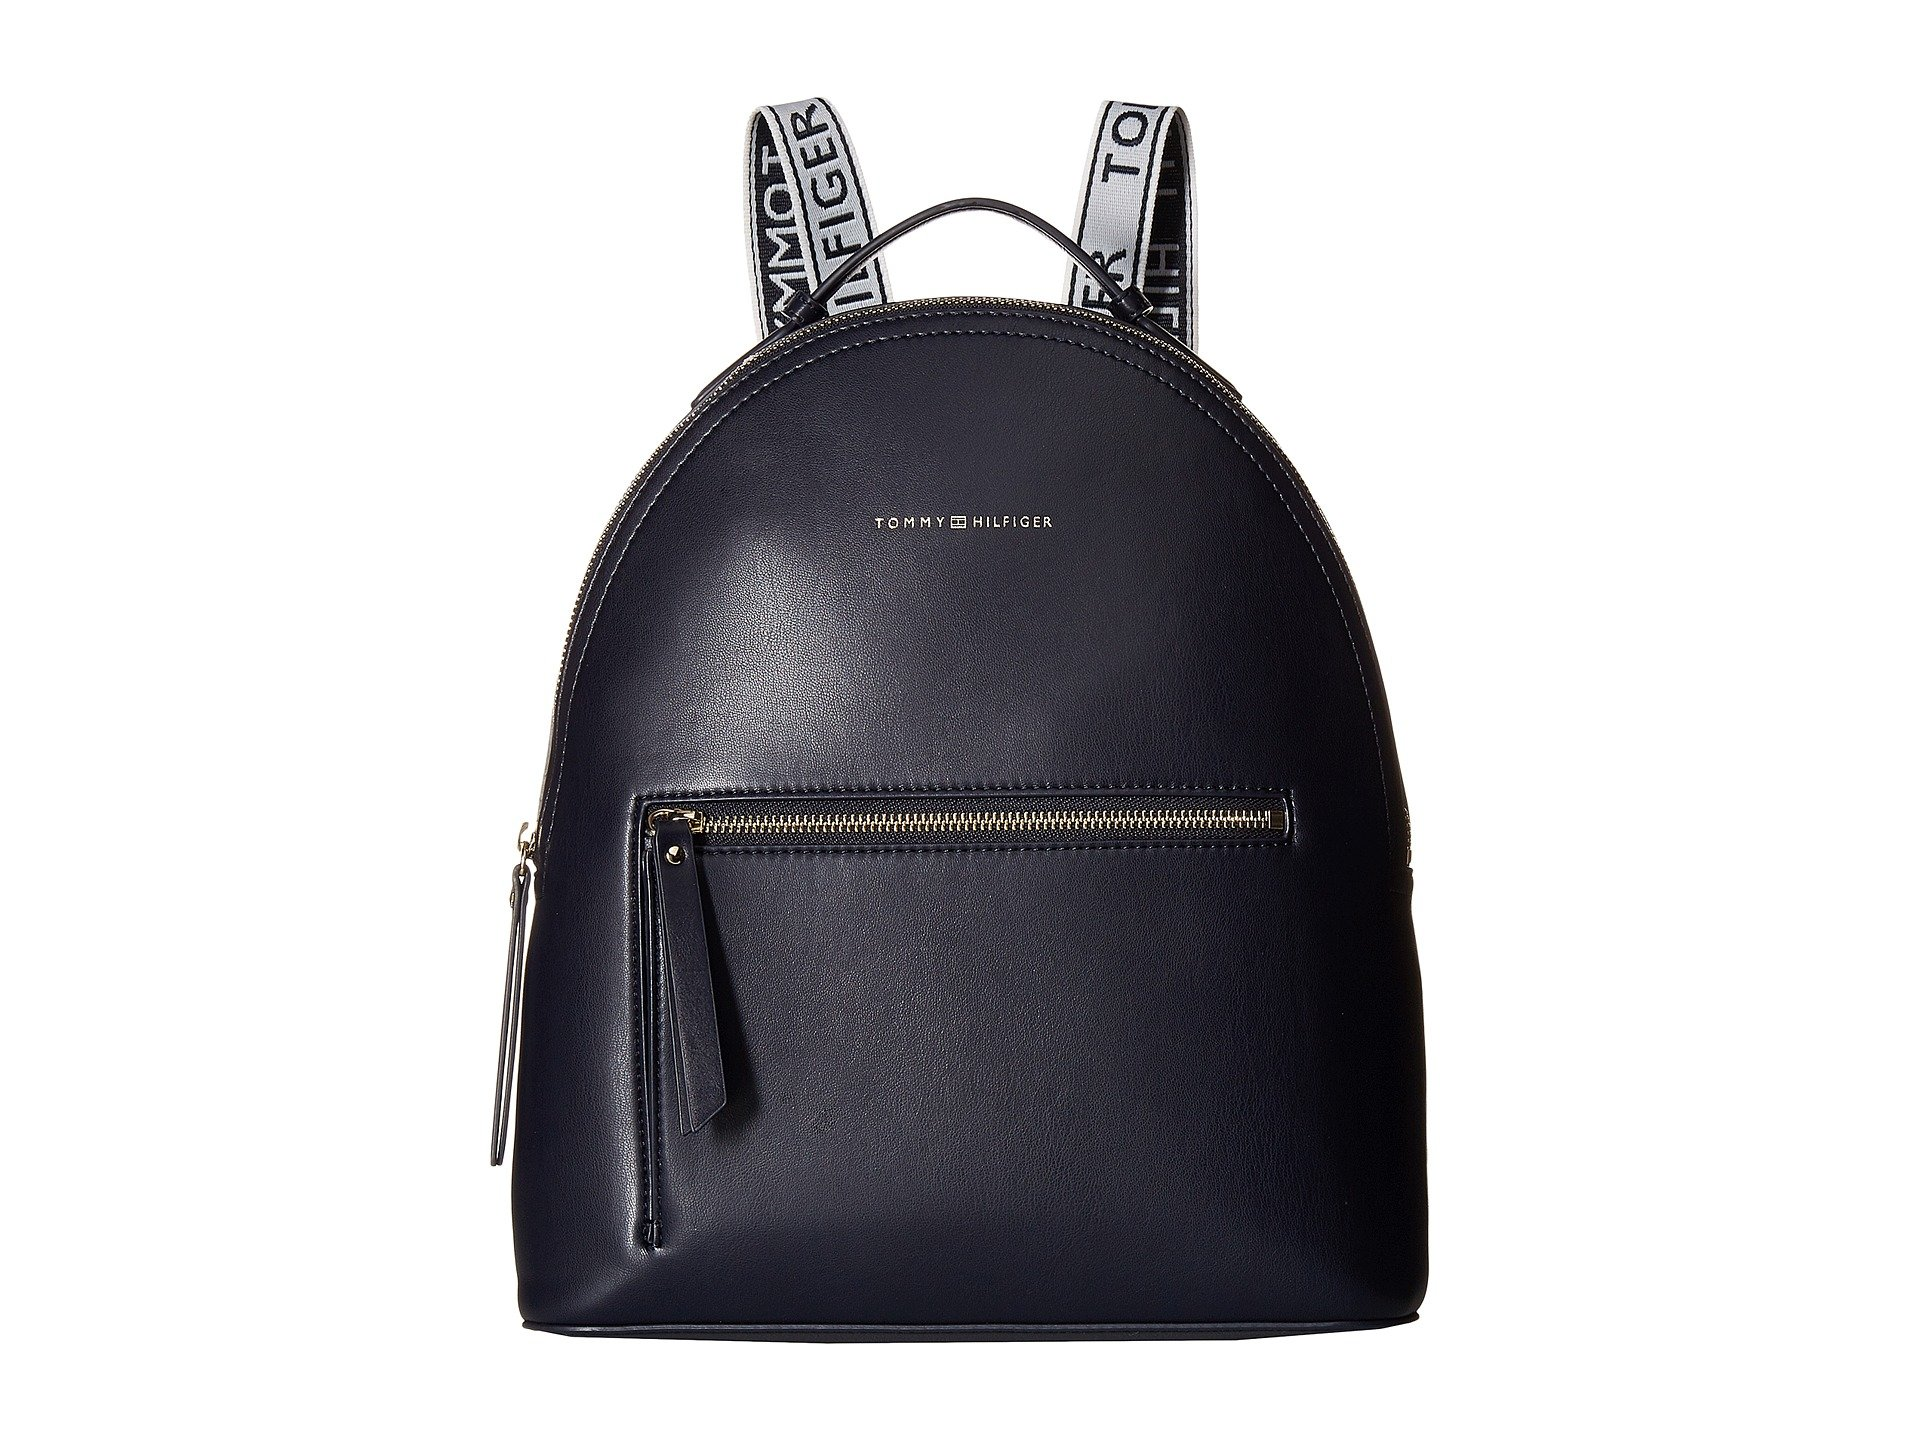 52a7d21c23e Galleon - Tommy Hilfiger Women's Iconic Tommy Backpack Black One Size